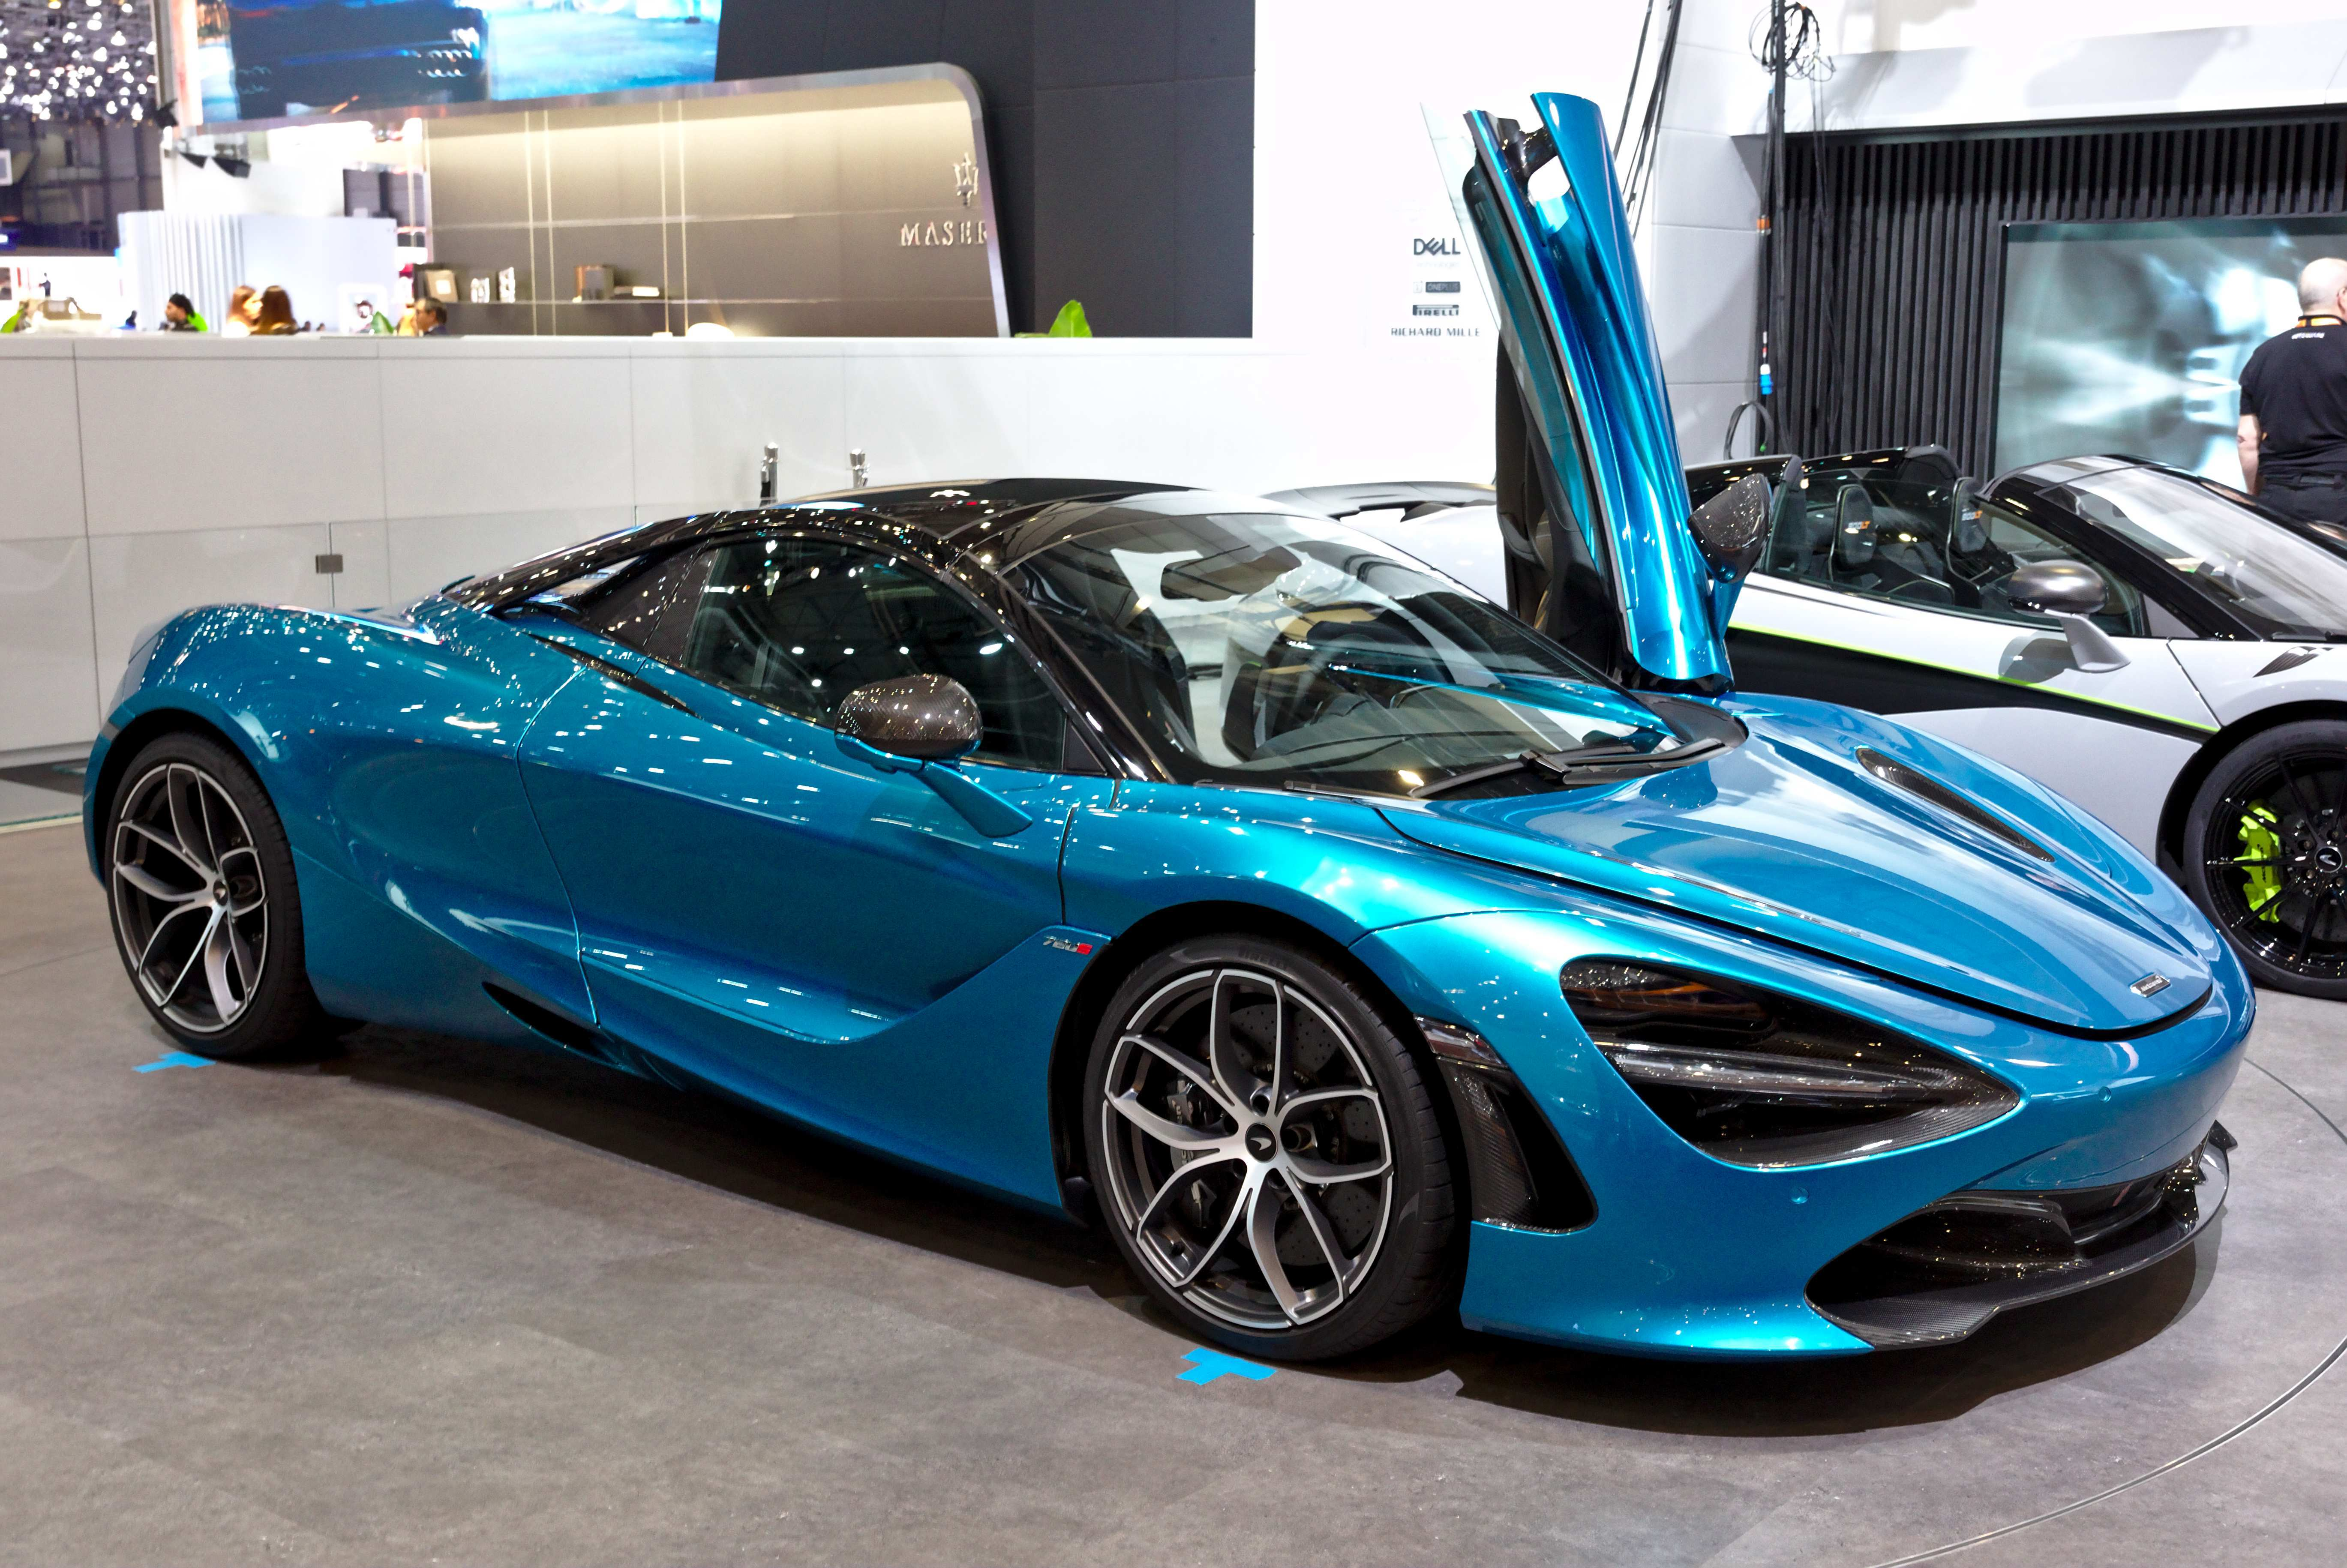 89 New 2019 Mclaren 720S Spider Prices